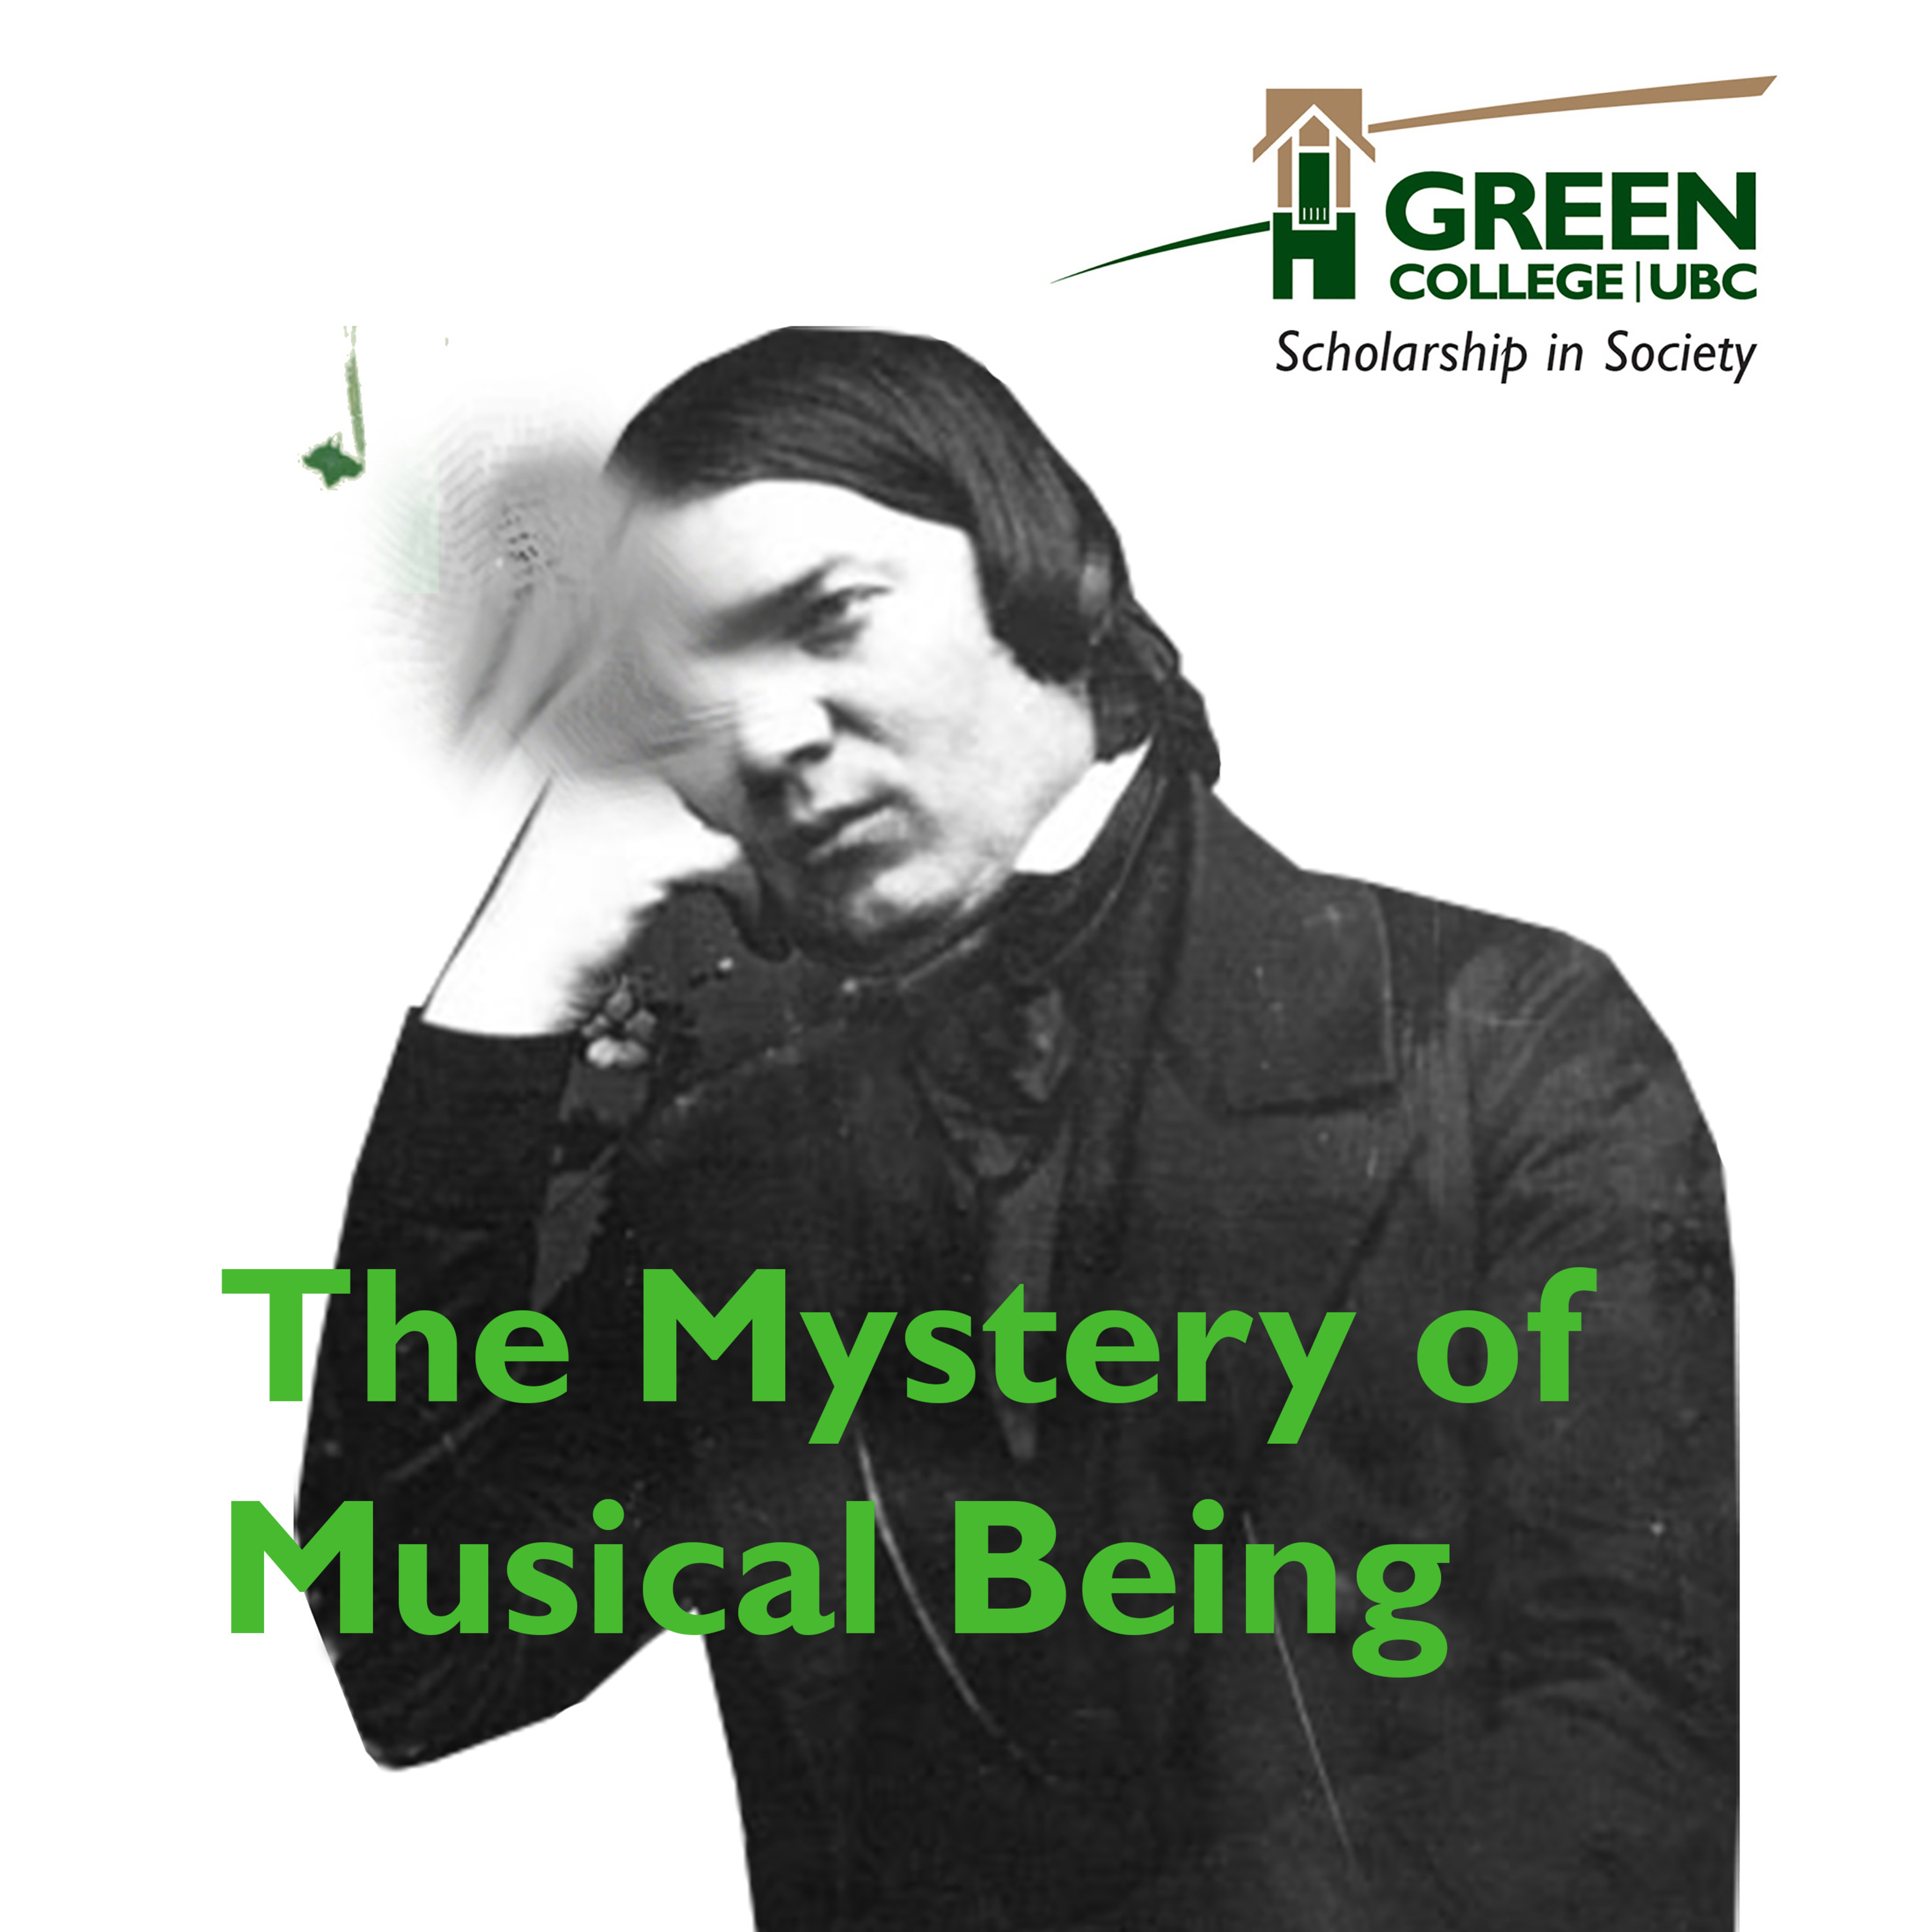 The Mystery of Musical Being